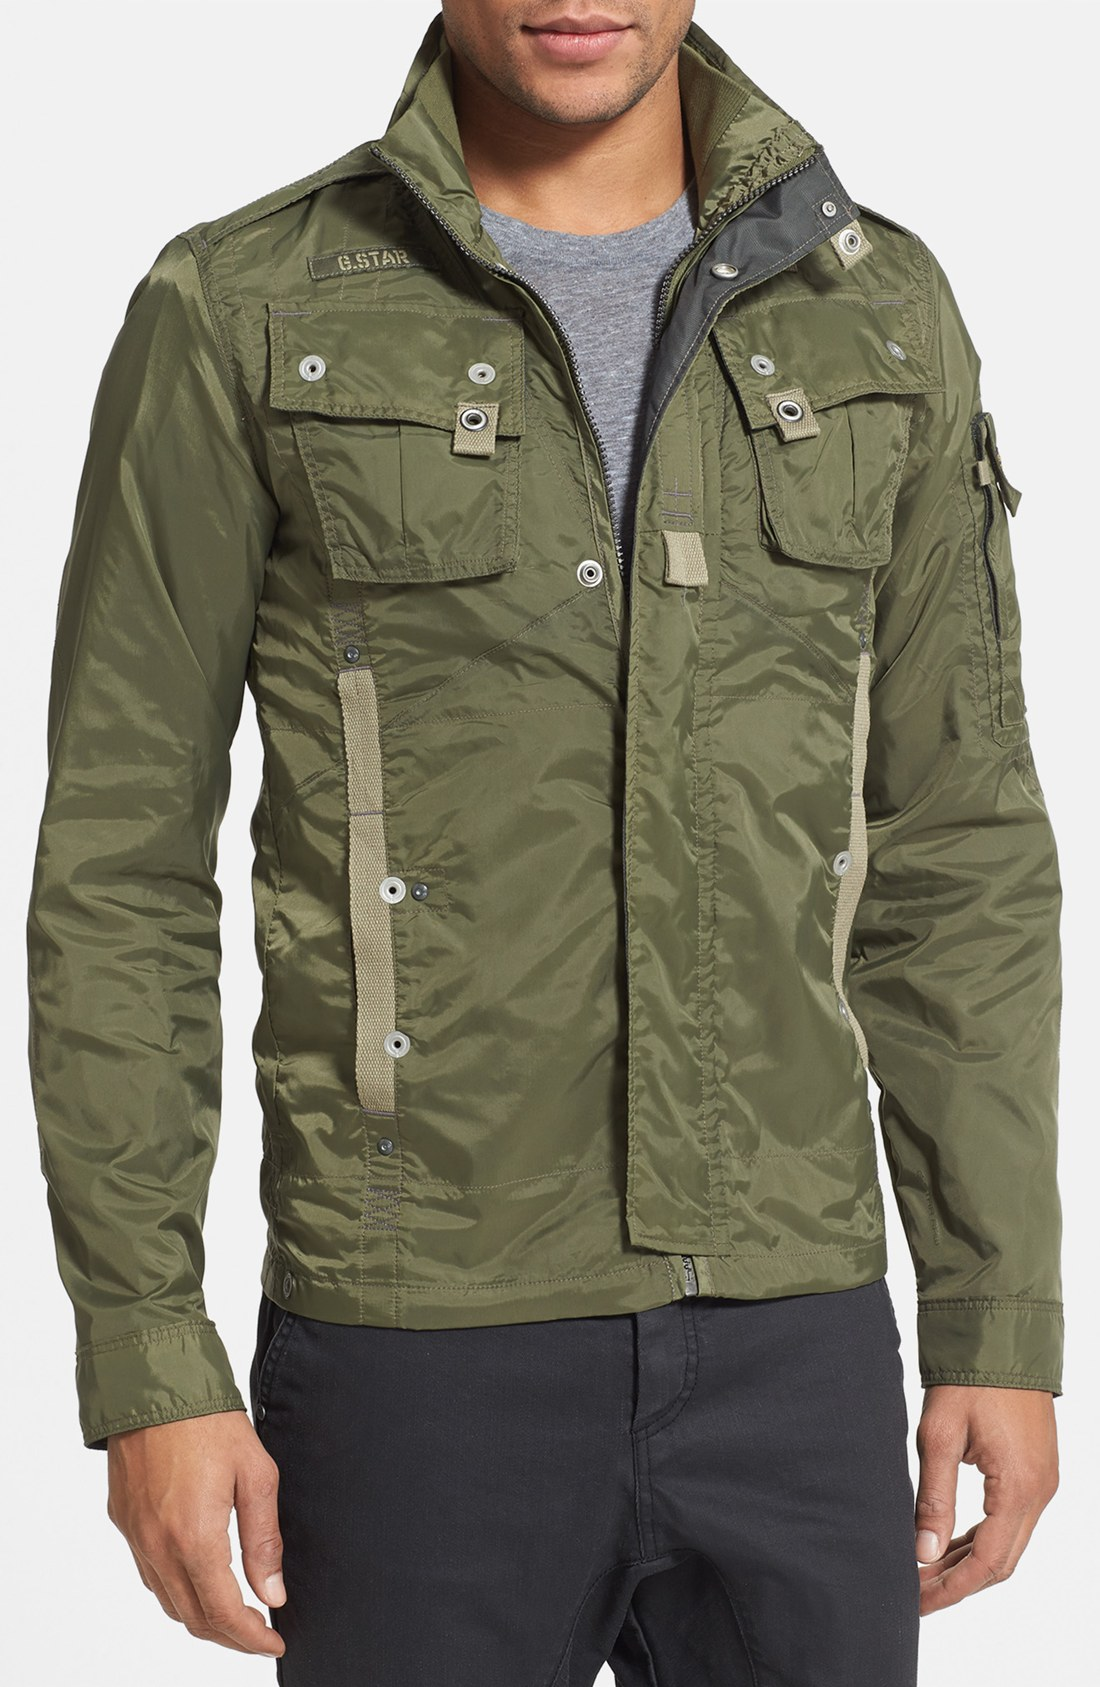 g star raw recolite lightweight military jacket in green. Black Bedroom Furniture Sets. Home Design Ideas